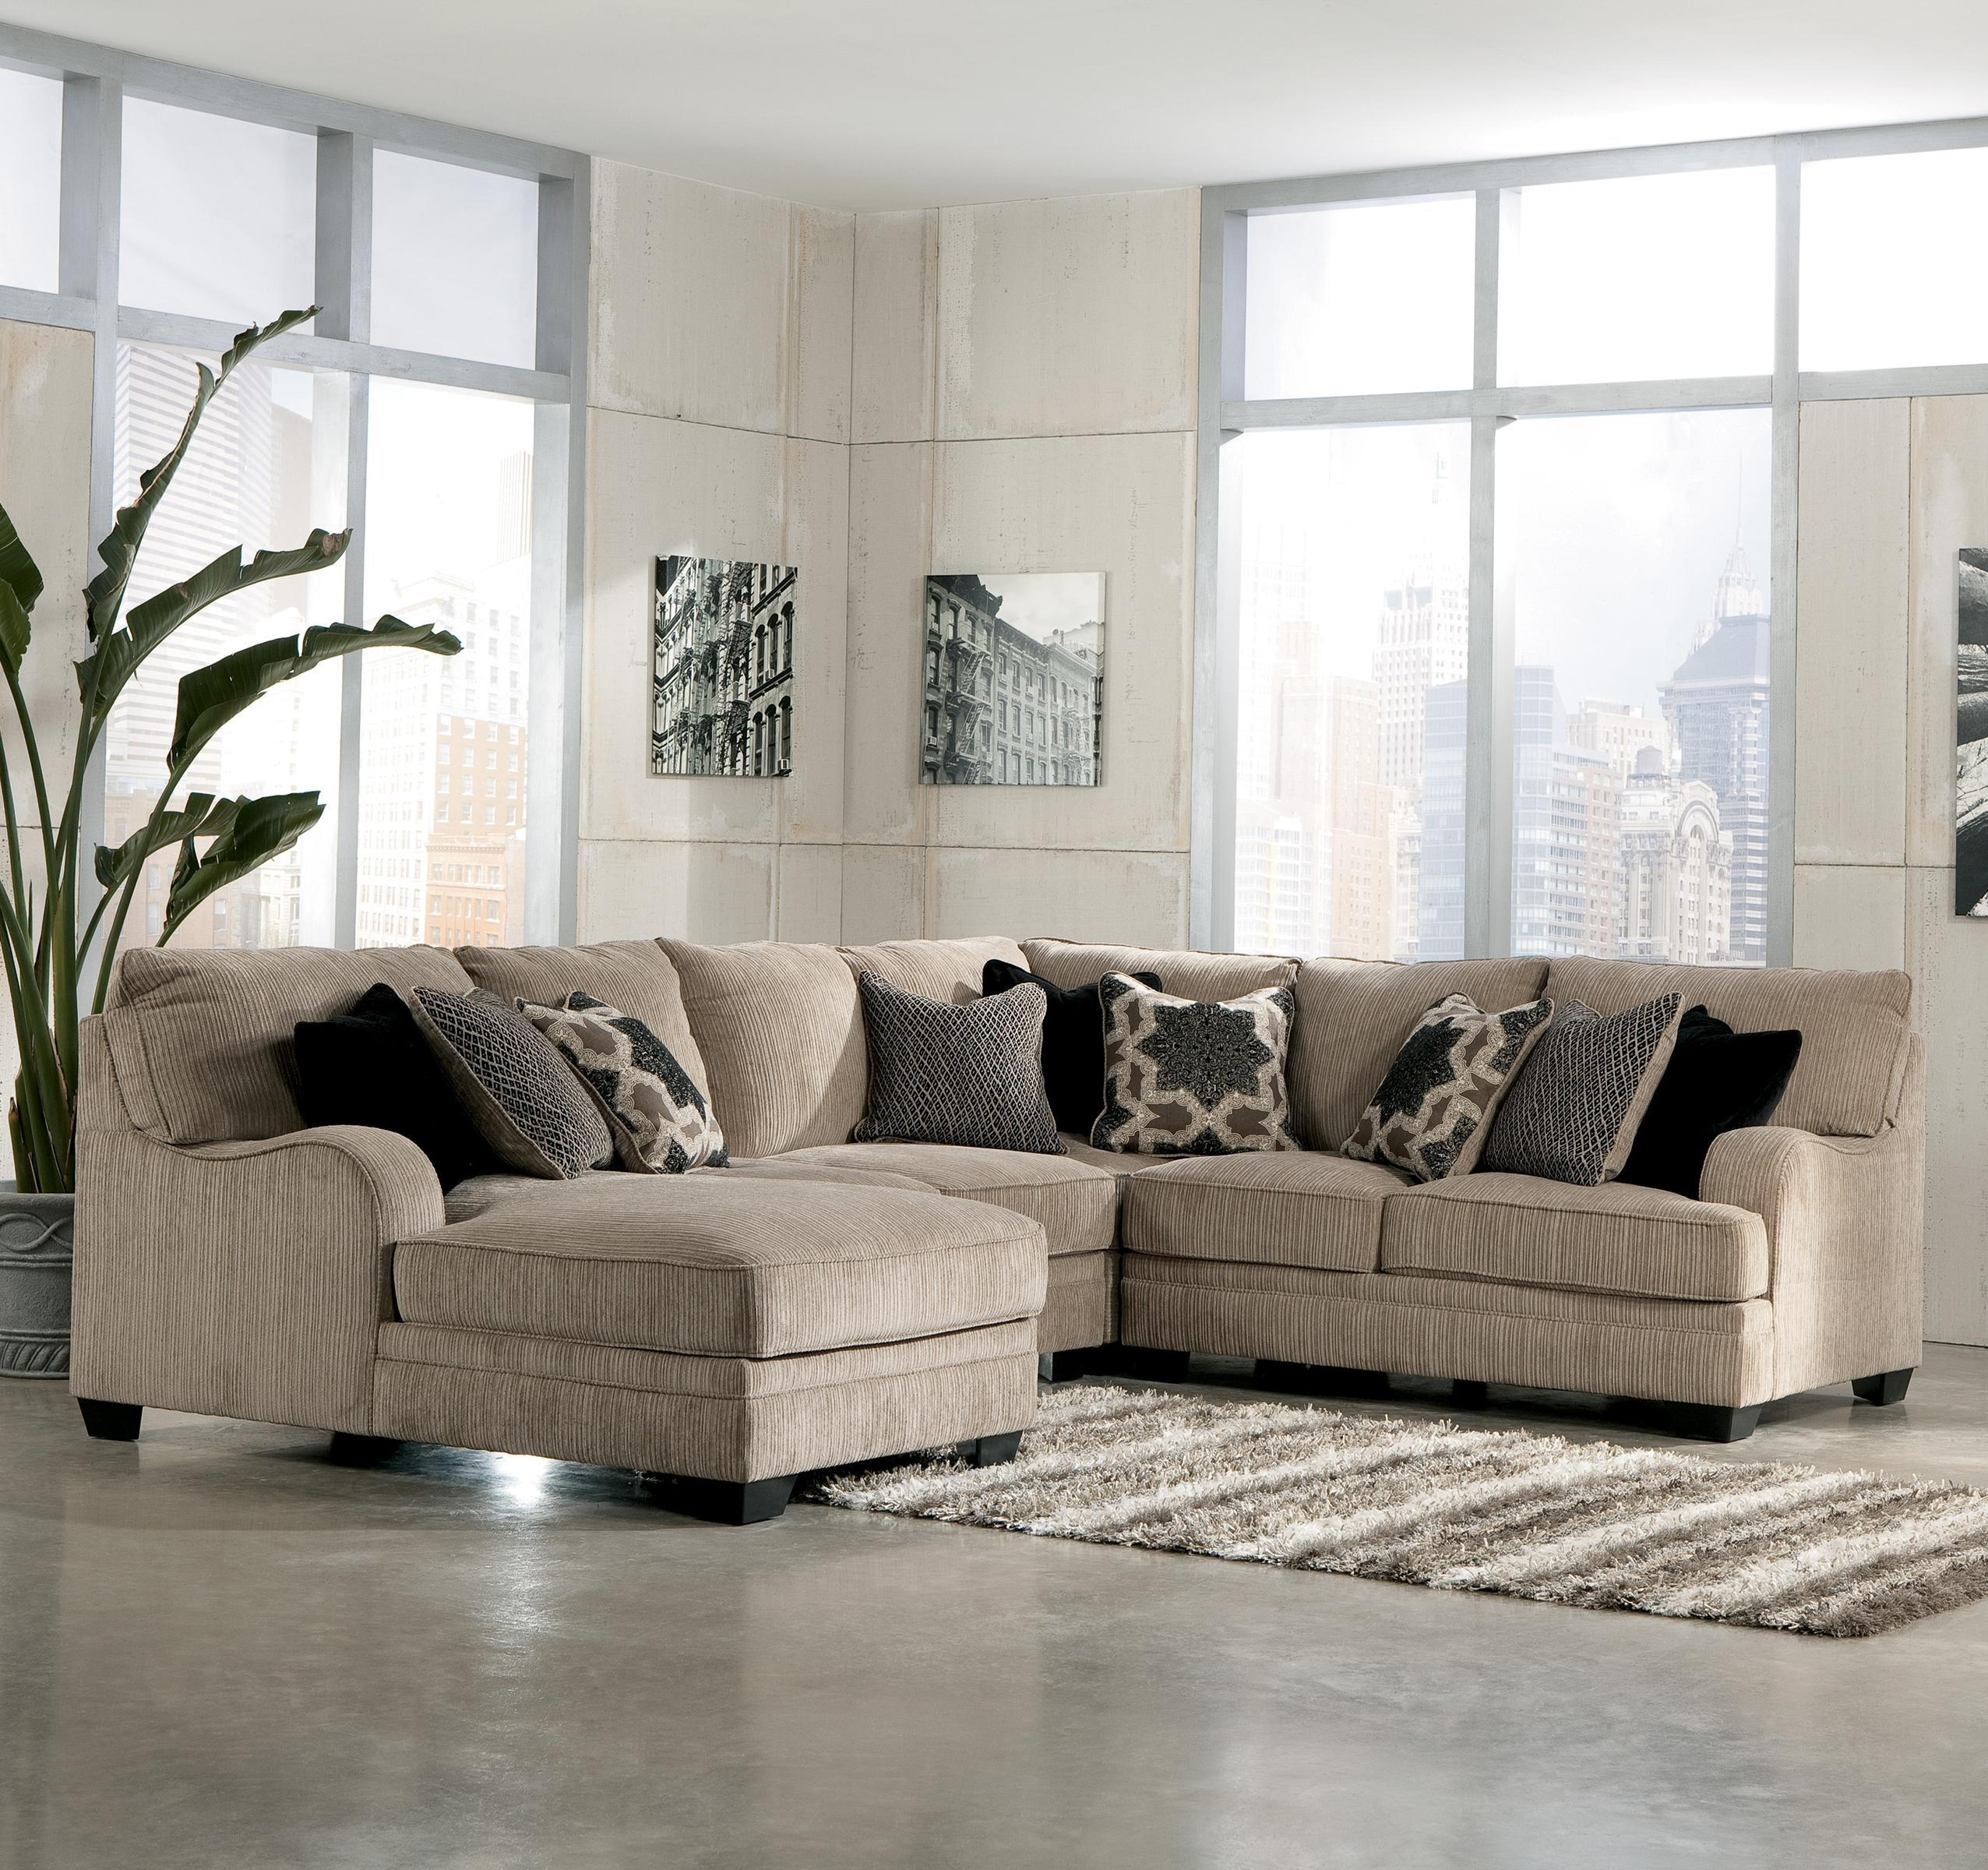 Chair & Sofa: Have An Interesting Living Room With Ashley Intended For Deep Sectionals (View 15 of 15)